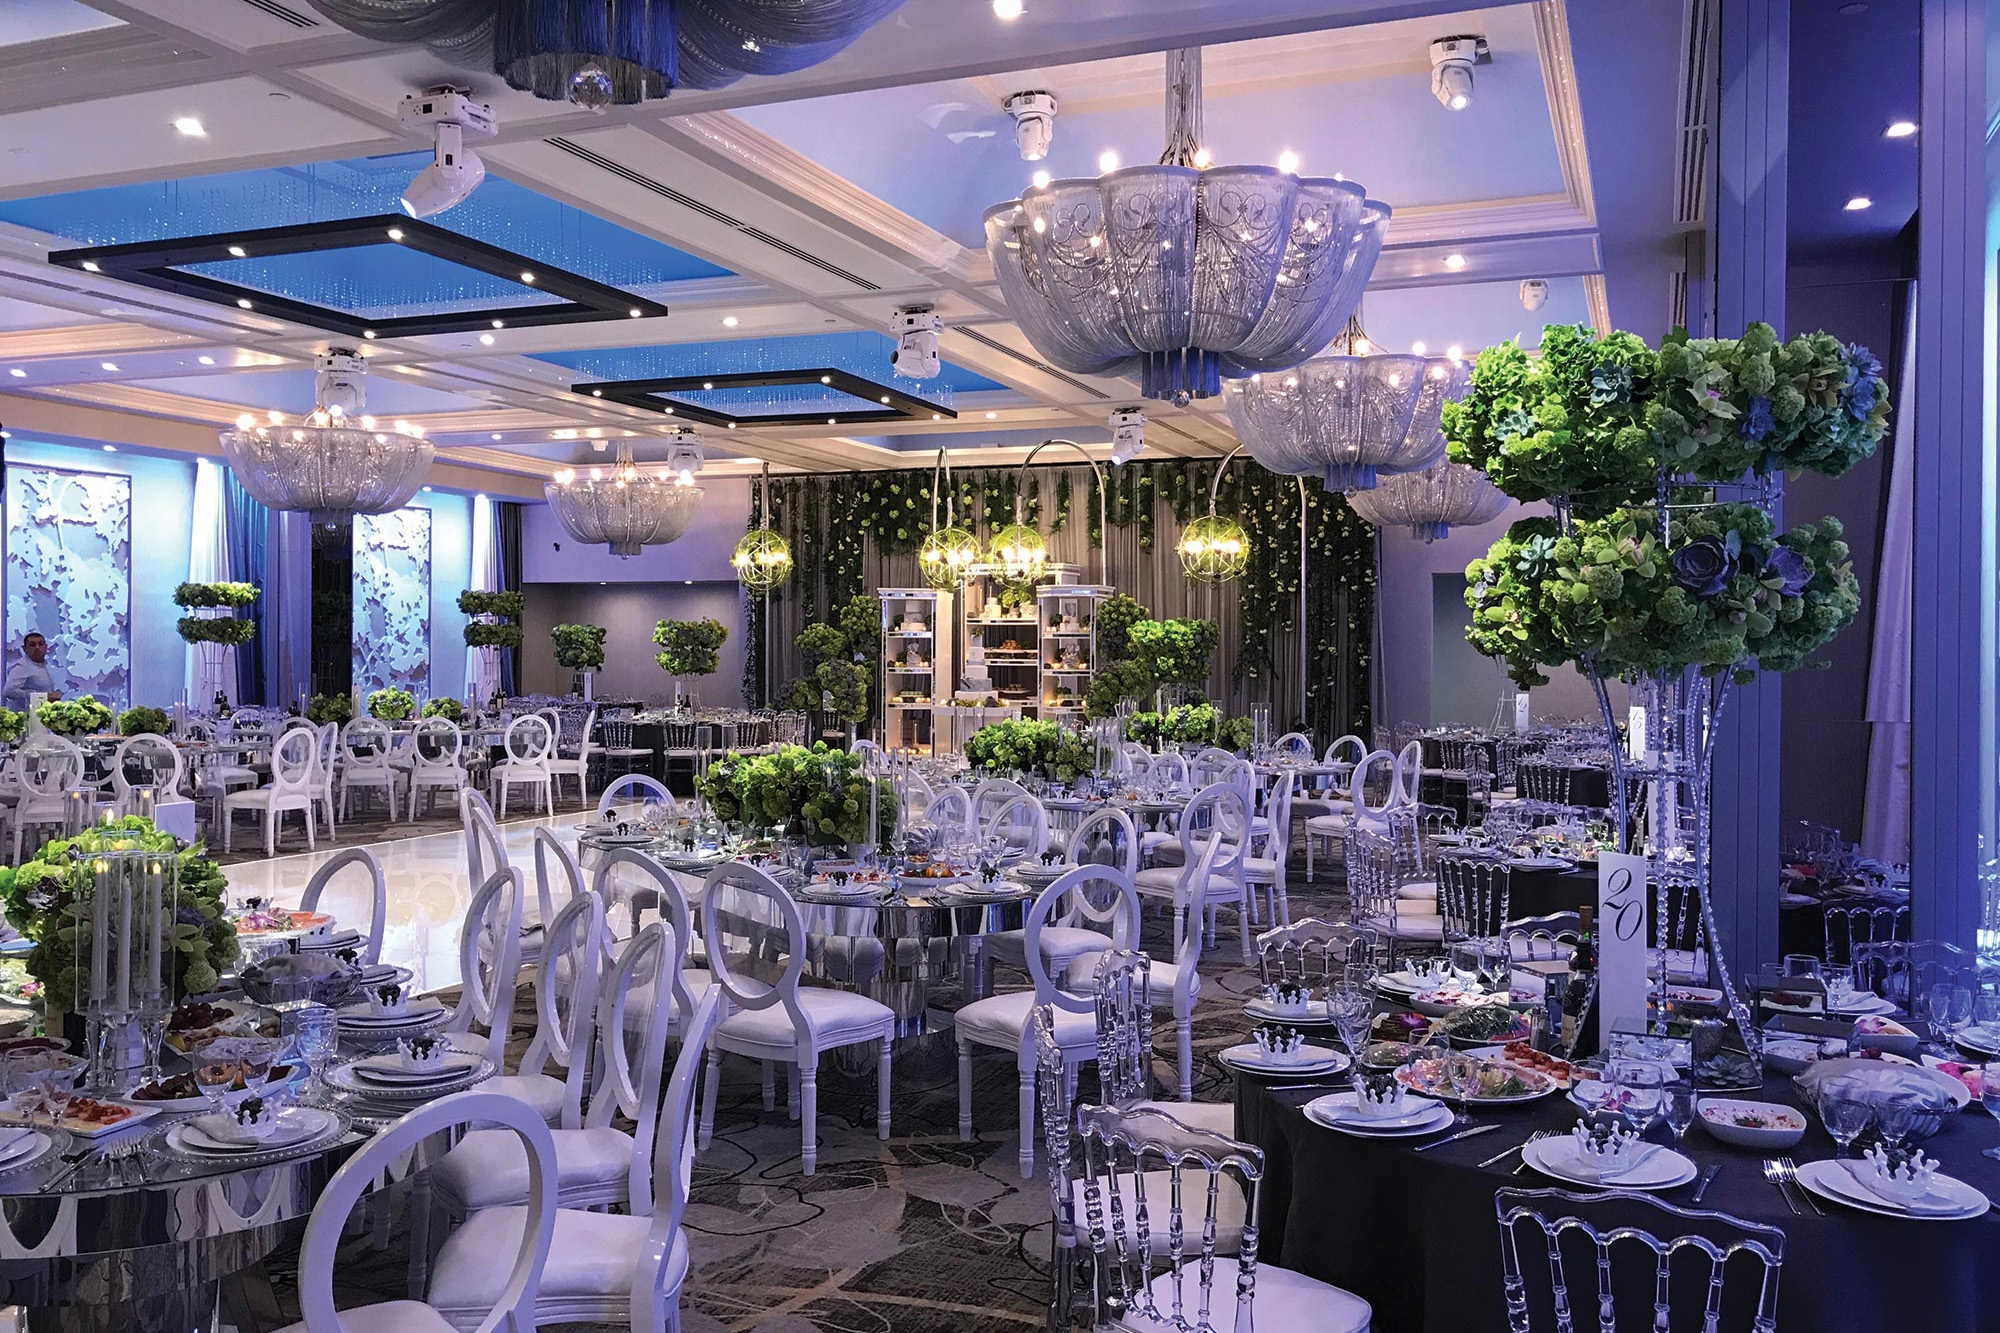 modern banquet hall in glendale CA, with Video wall backdrop